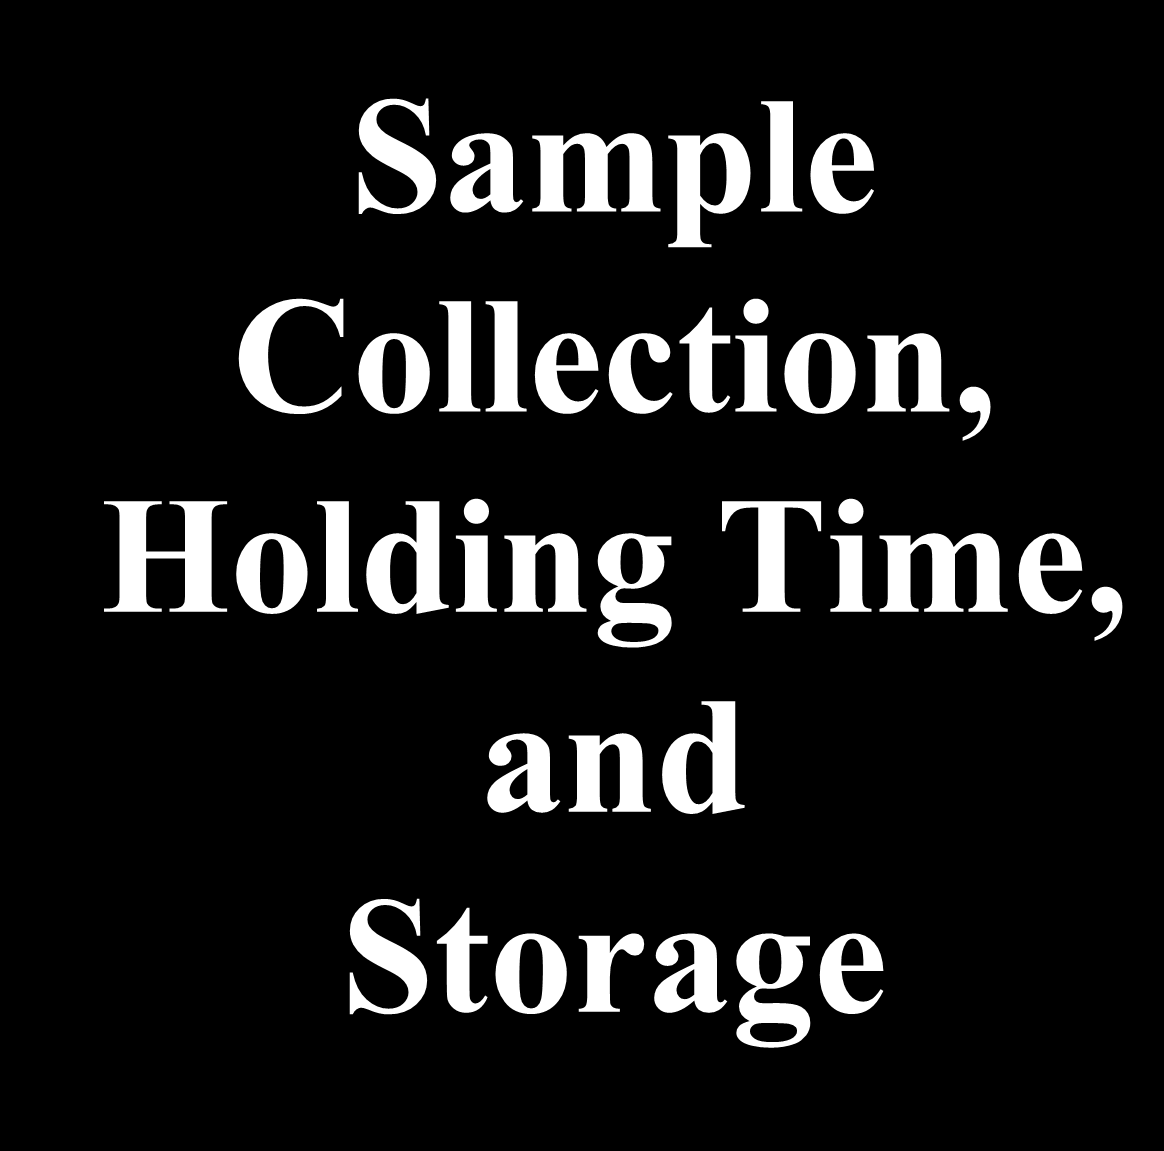 Sample Collection,